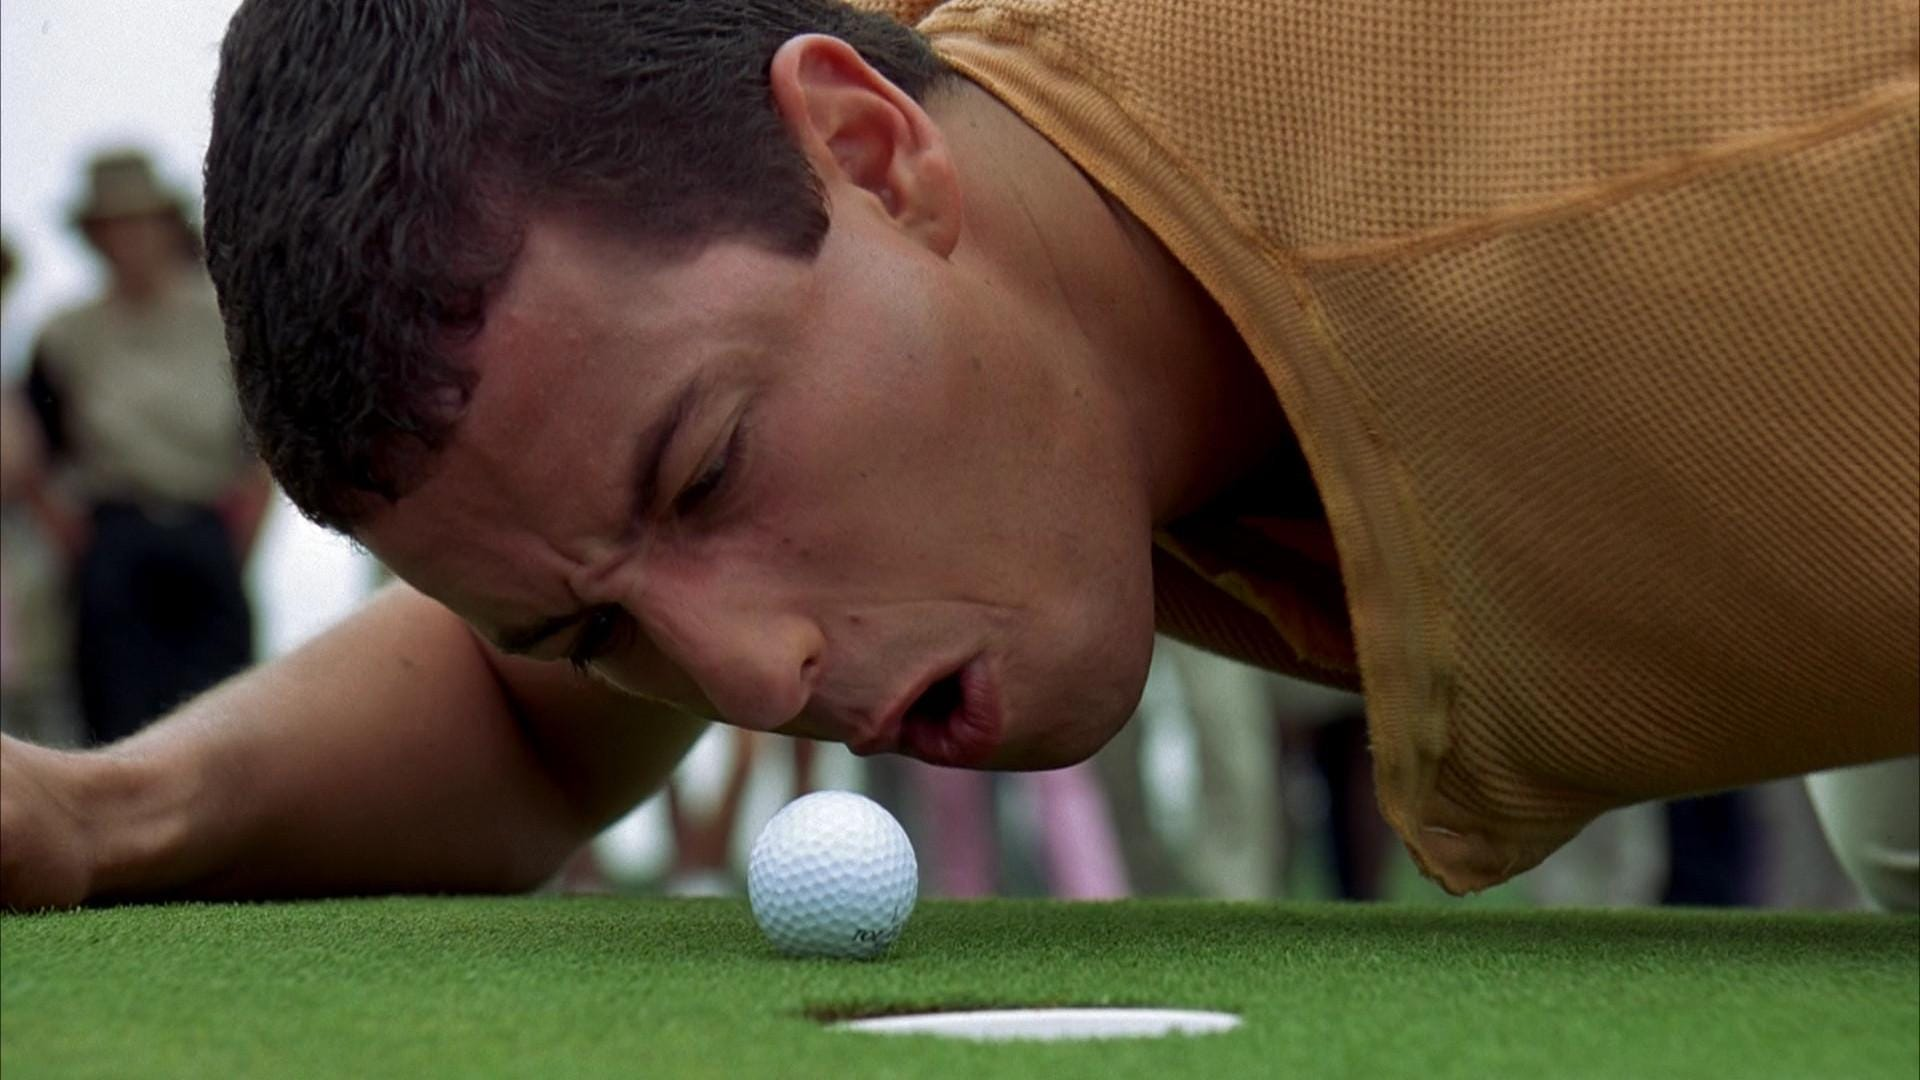 Iconic golf scene from the movie Happy Gilmore with Adam Sandler